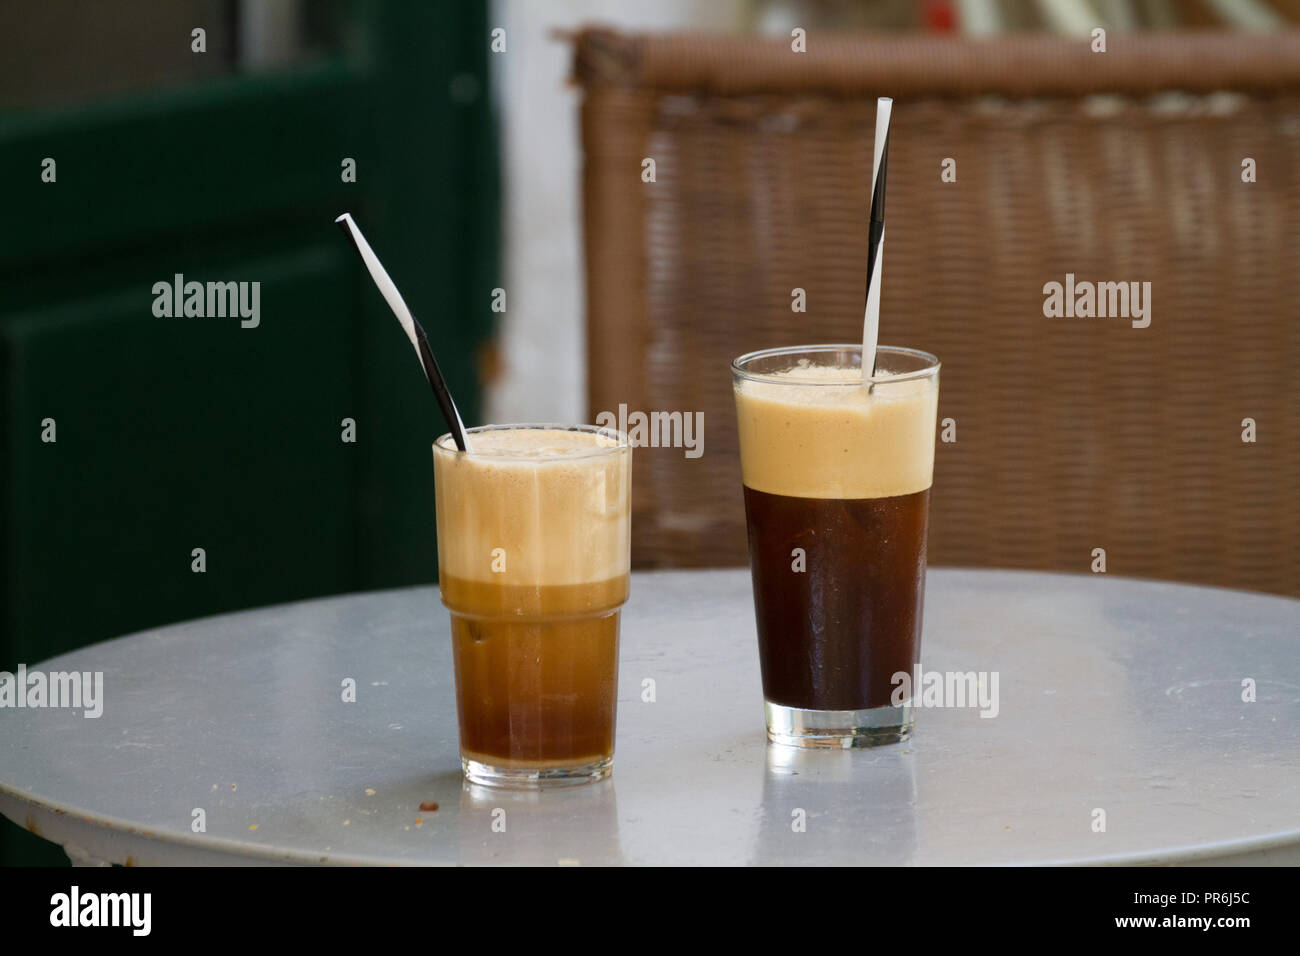 Coffees in glasses, with straws, waiting to be drunk - Stock Image